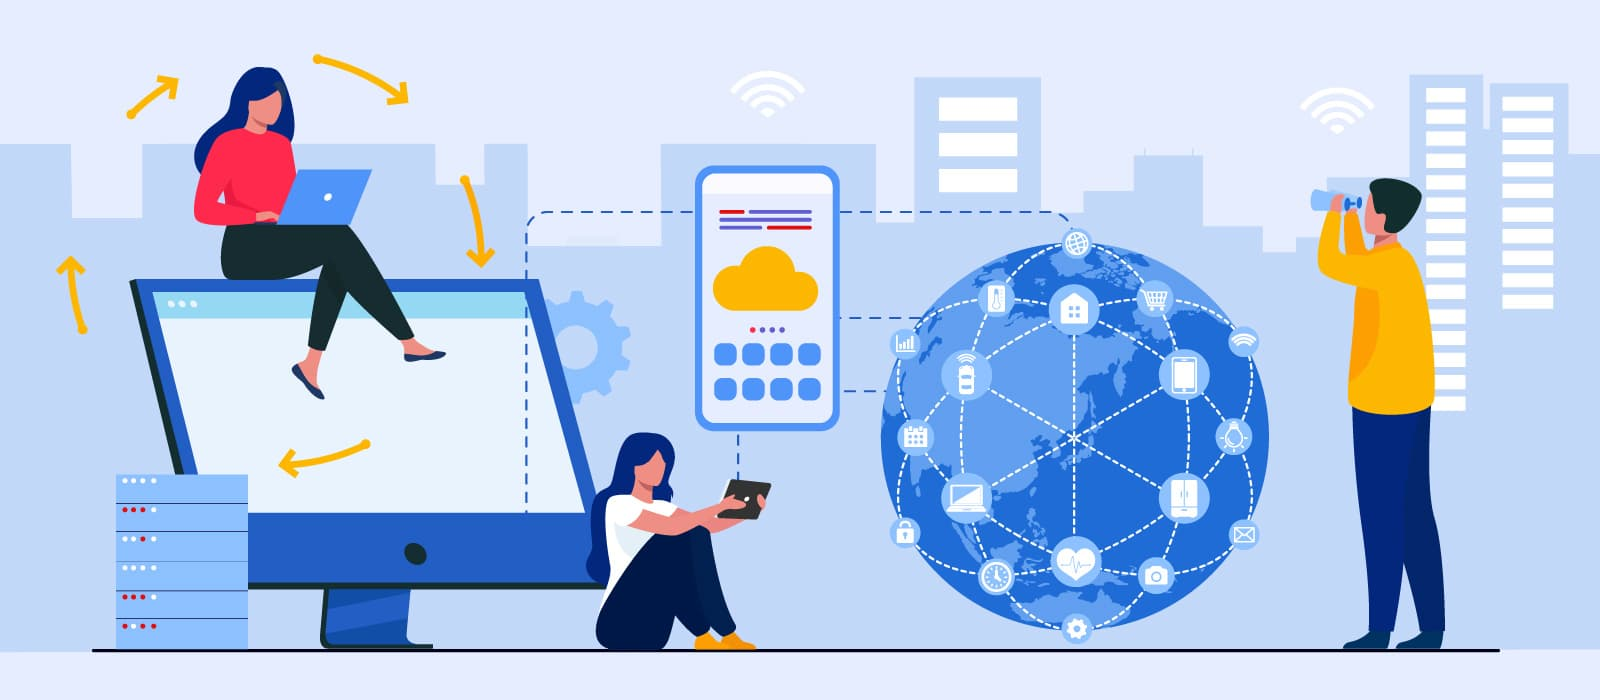 Three people next to cloud technology icons and a globe surrounded by IoT network